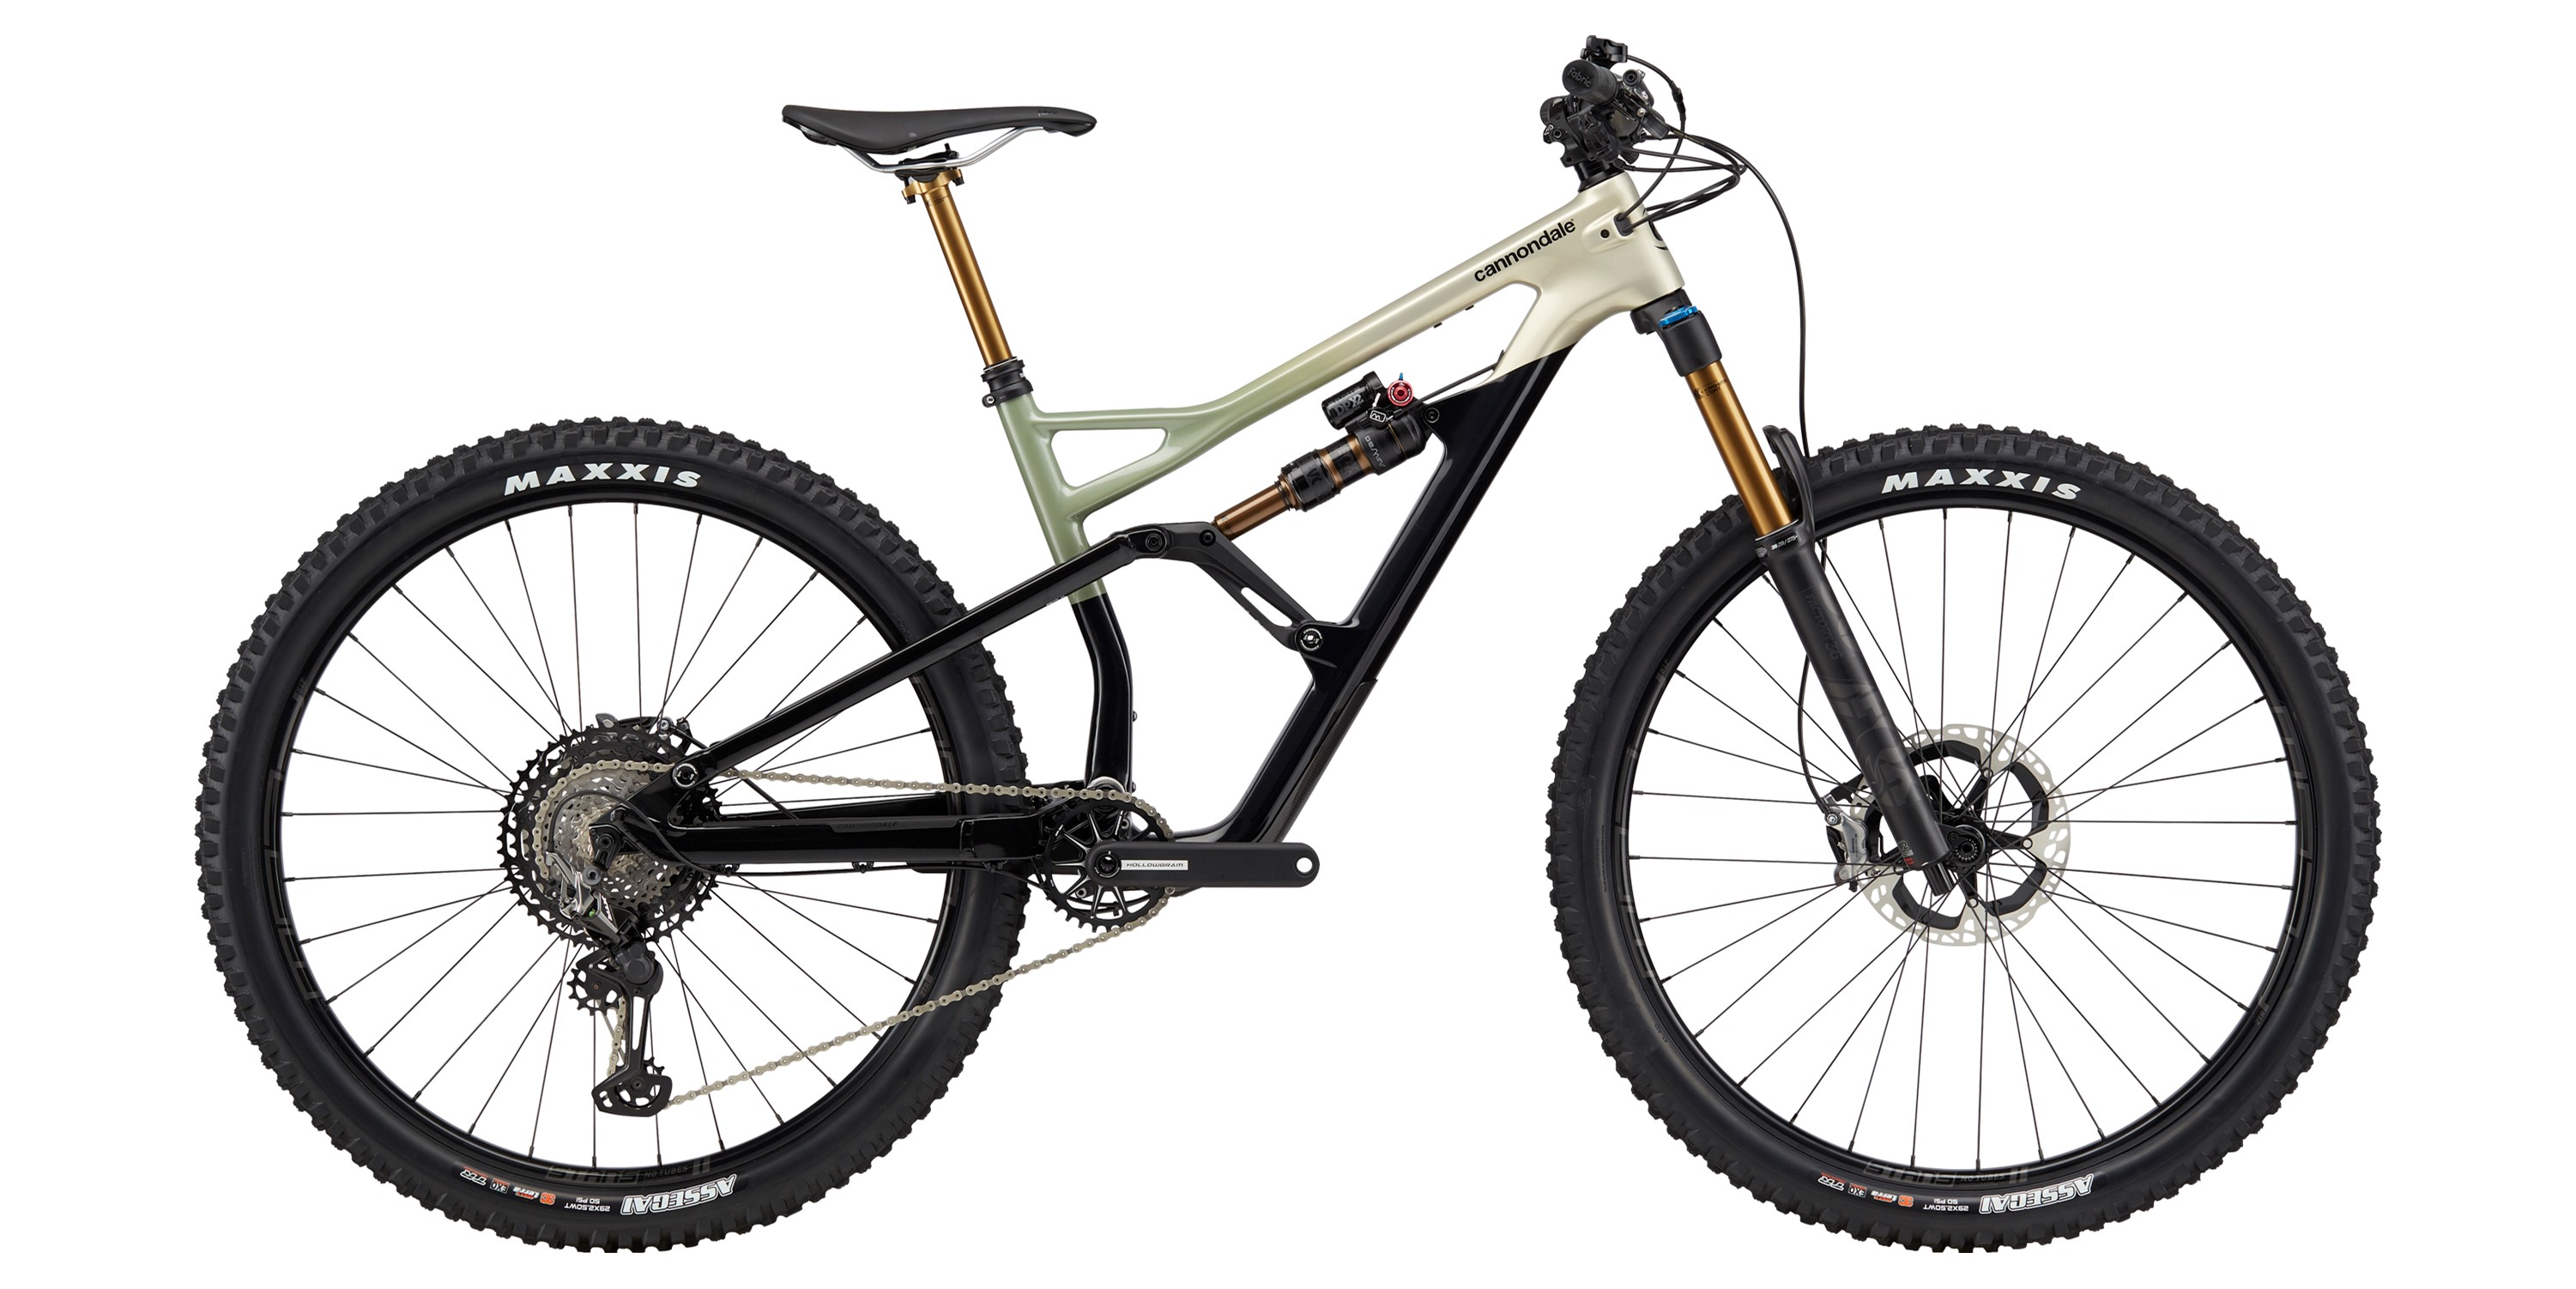 2020 Cannondale Jekyll 1 Carbon Full Suspension Mountain Bike in Grey | MTB